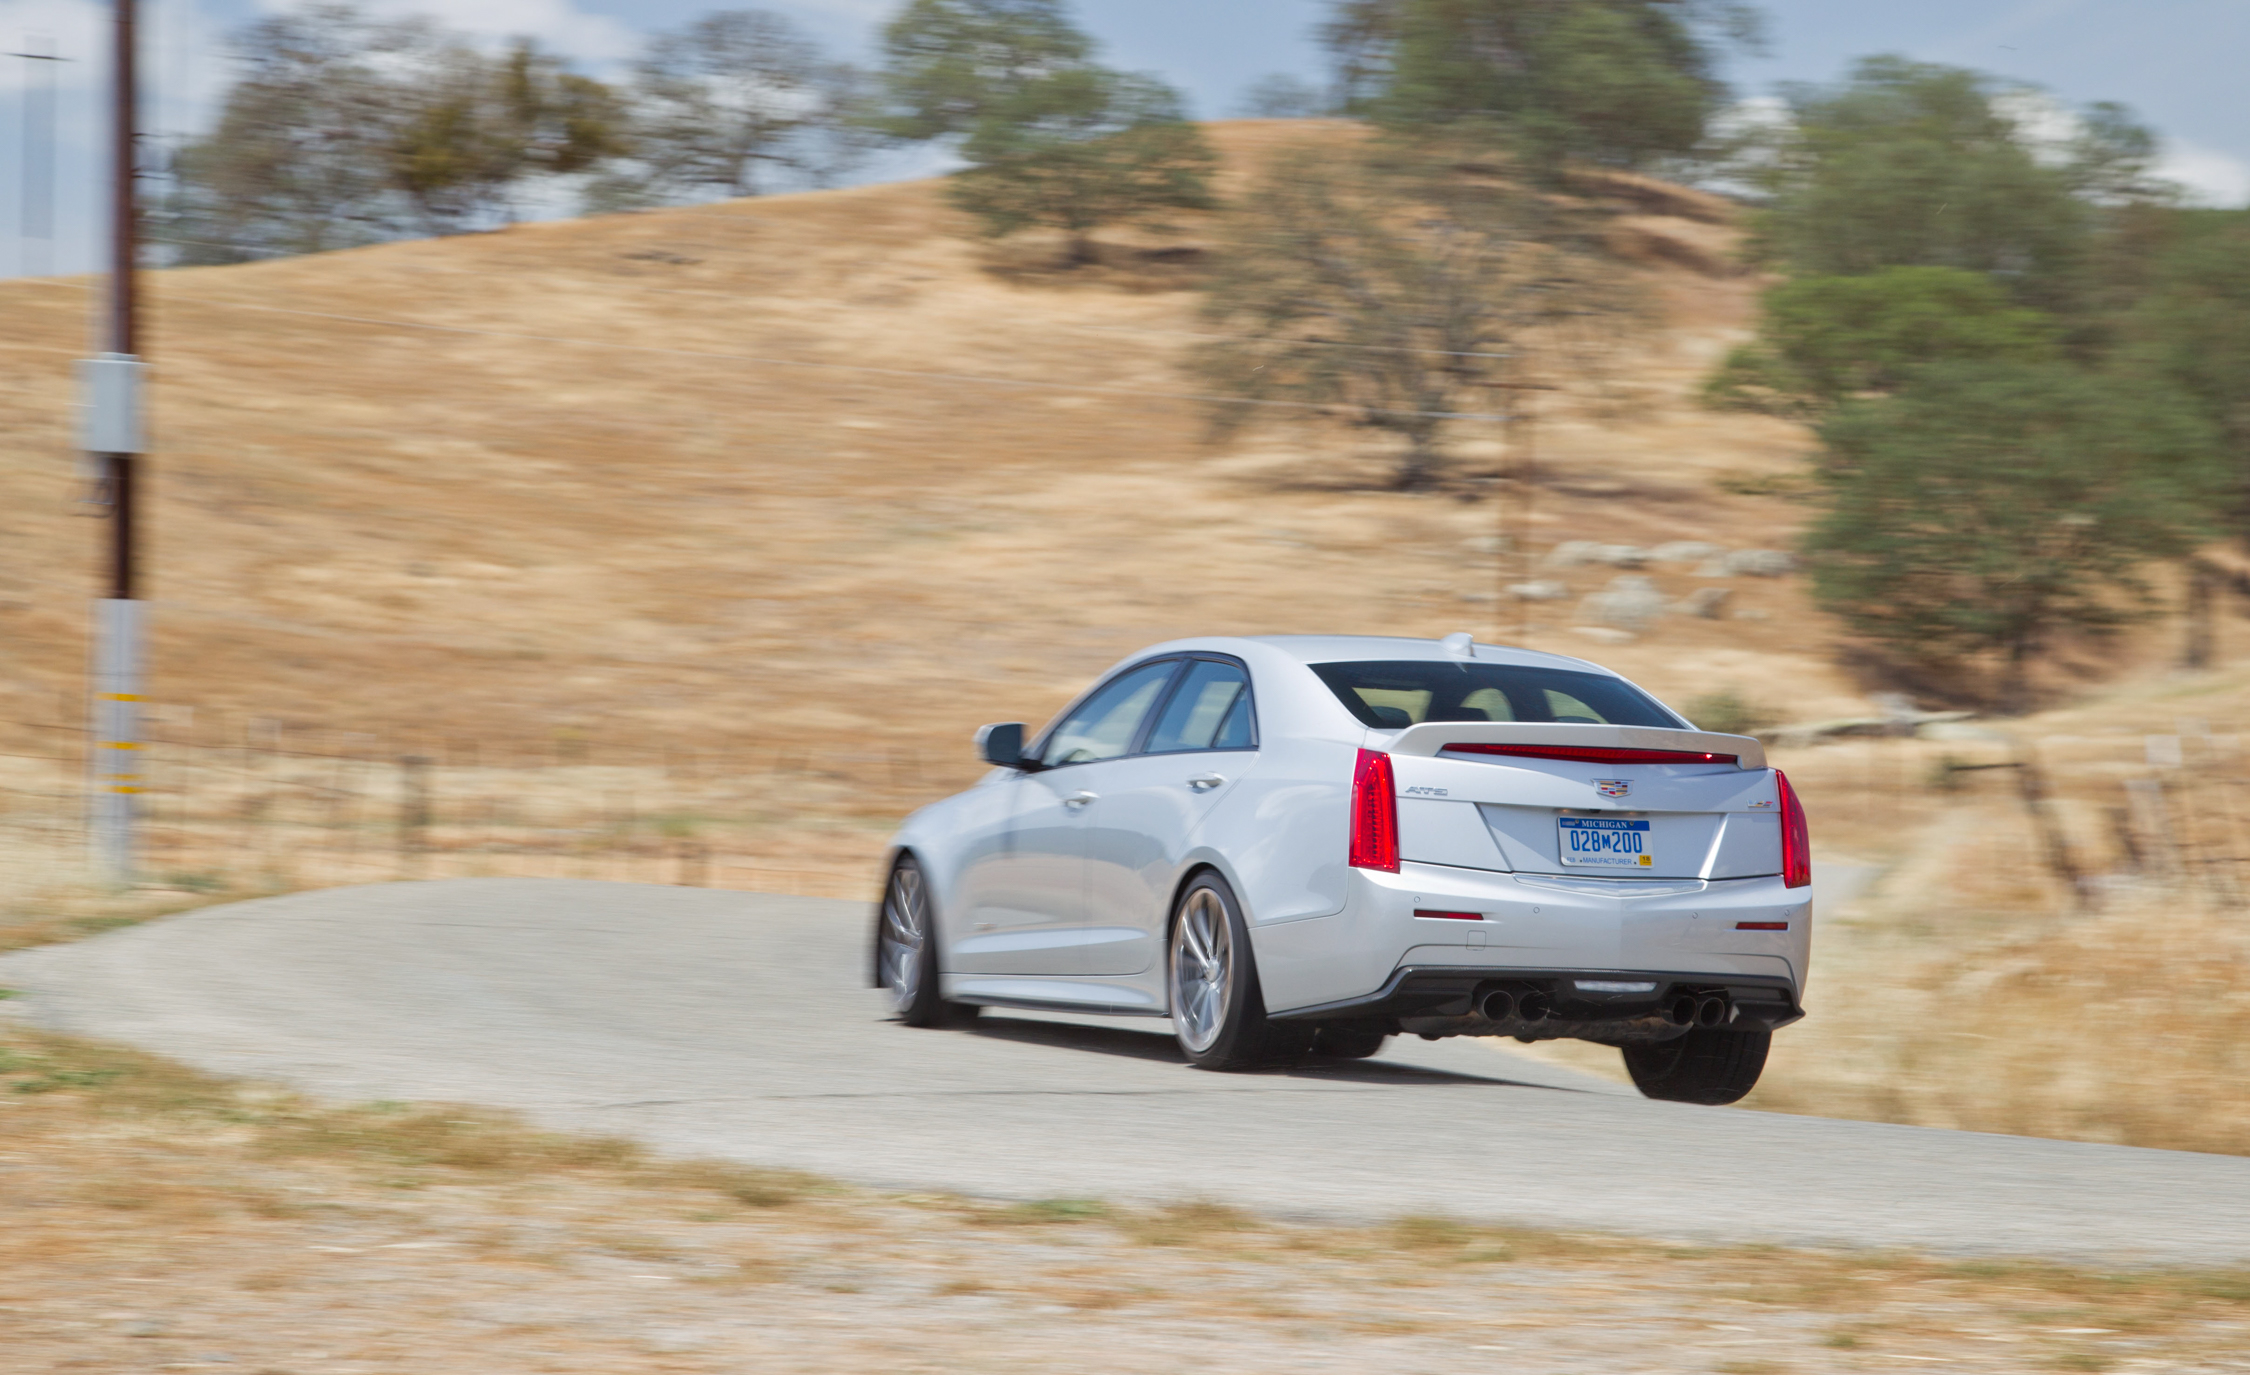 2016 Cadillac ATS-V Rear Side Design